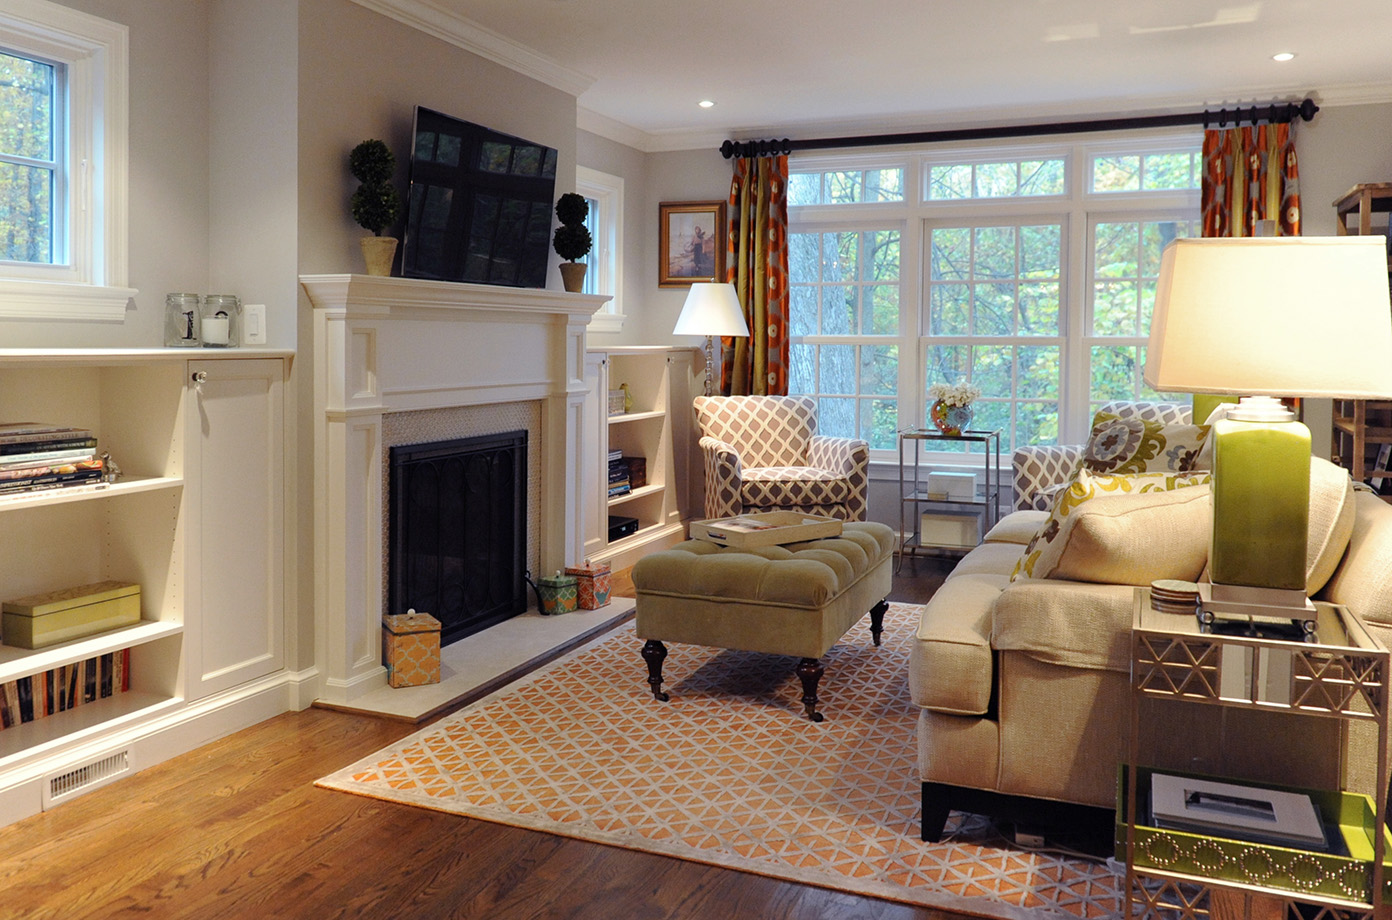 Comfort and coziness in this Colonial living room